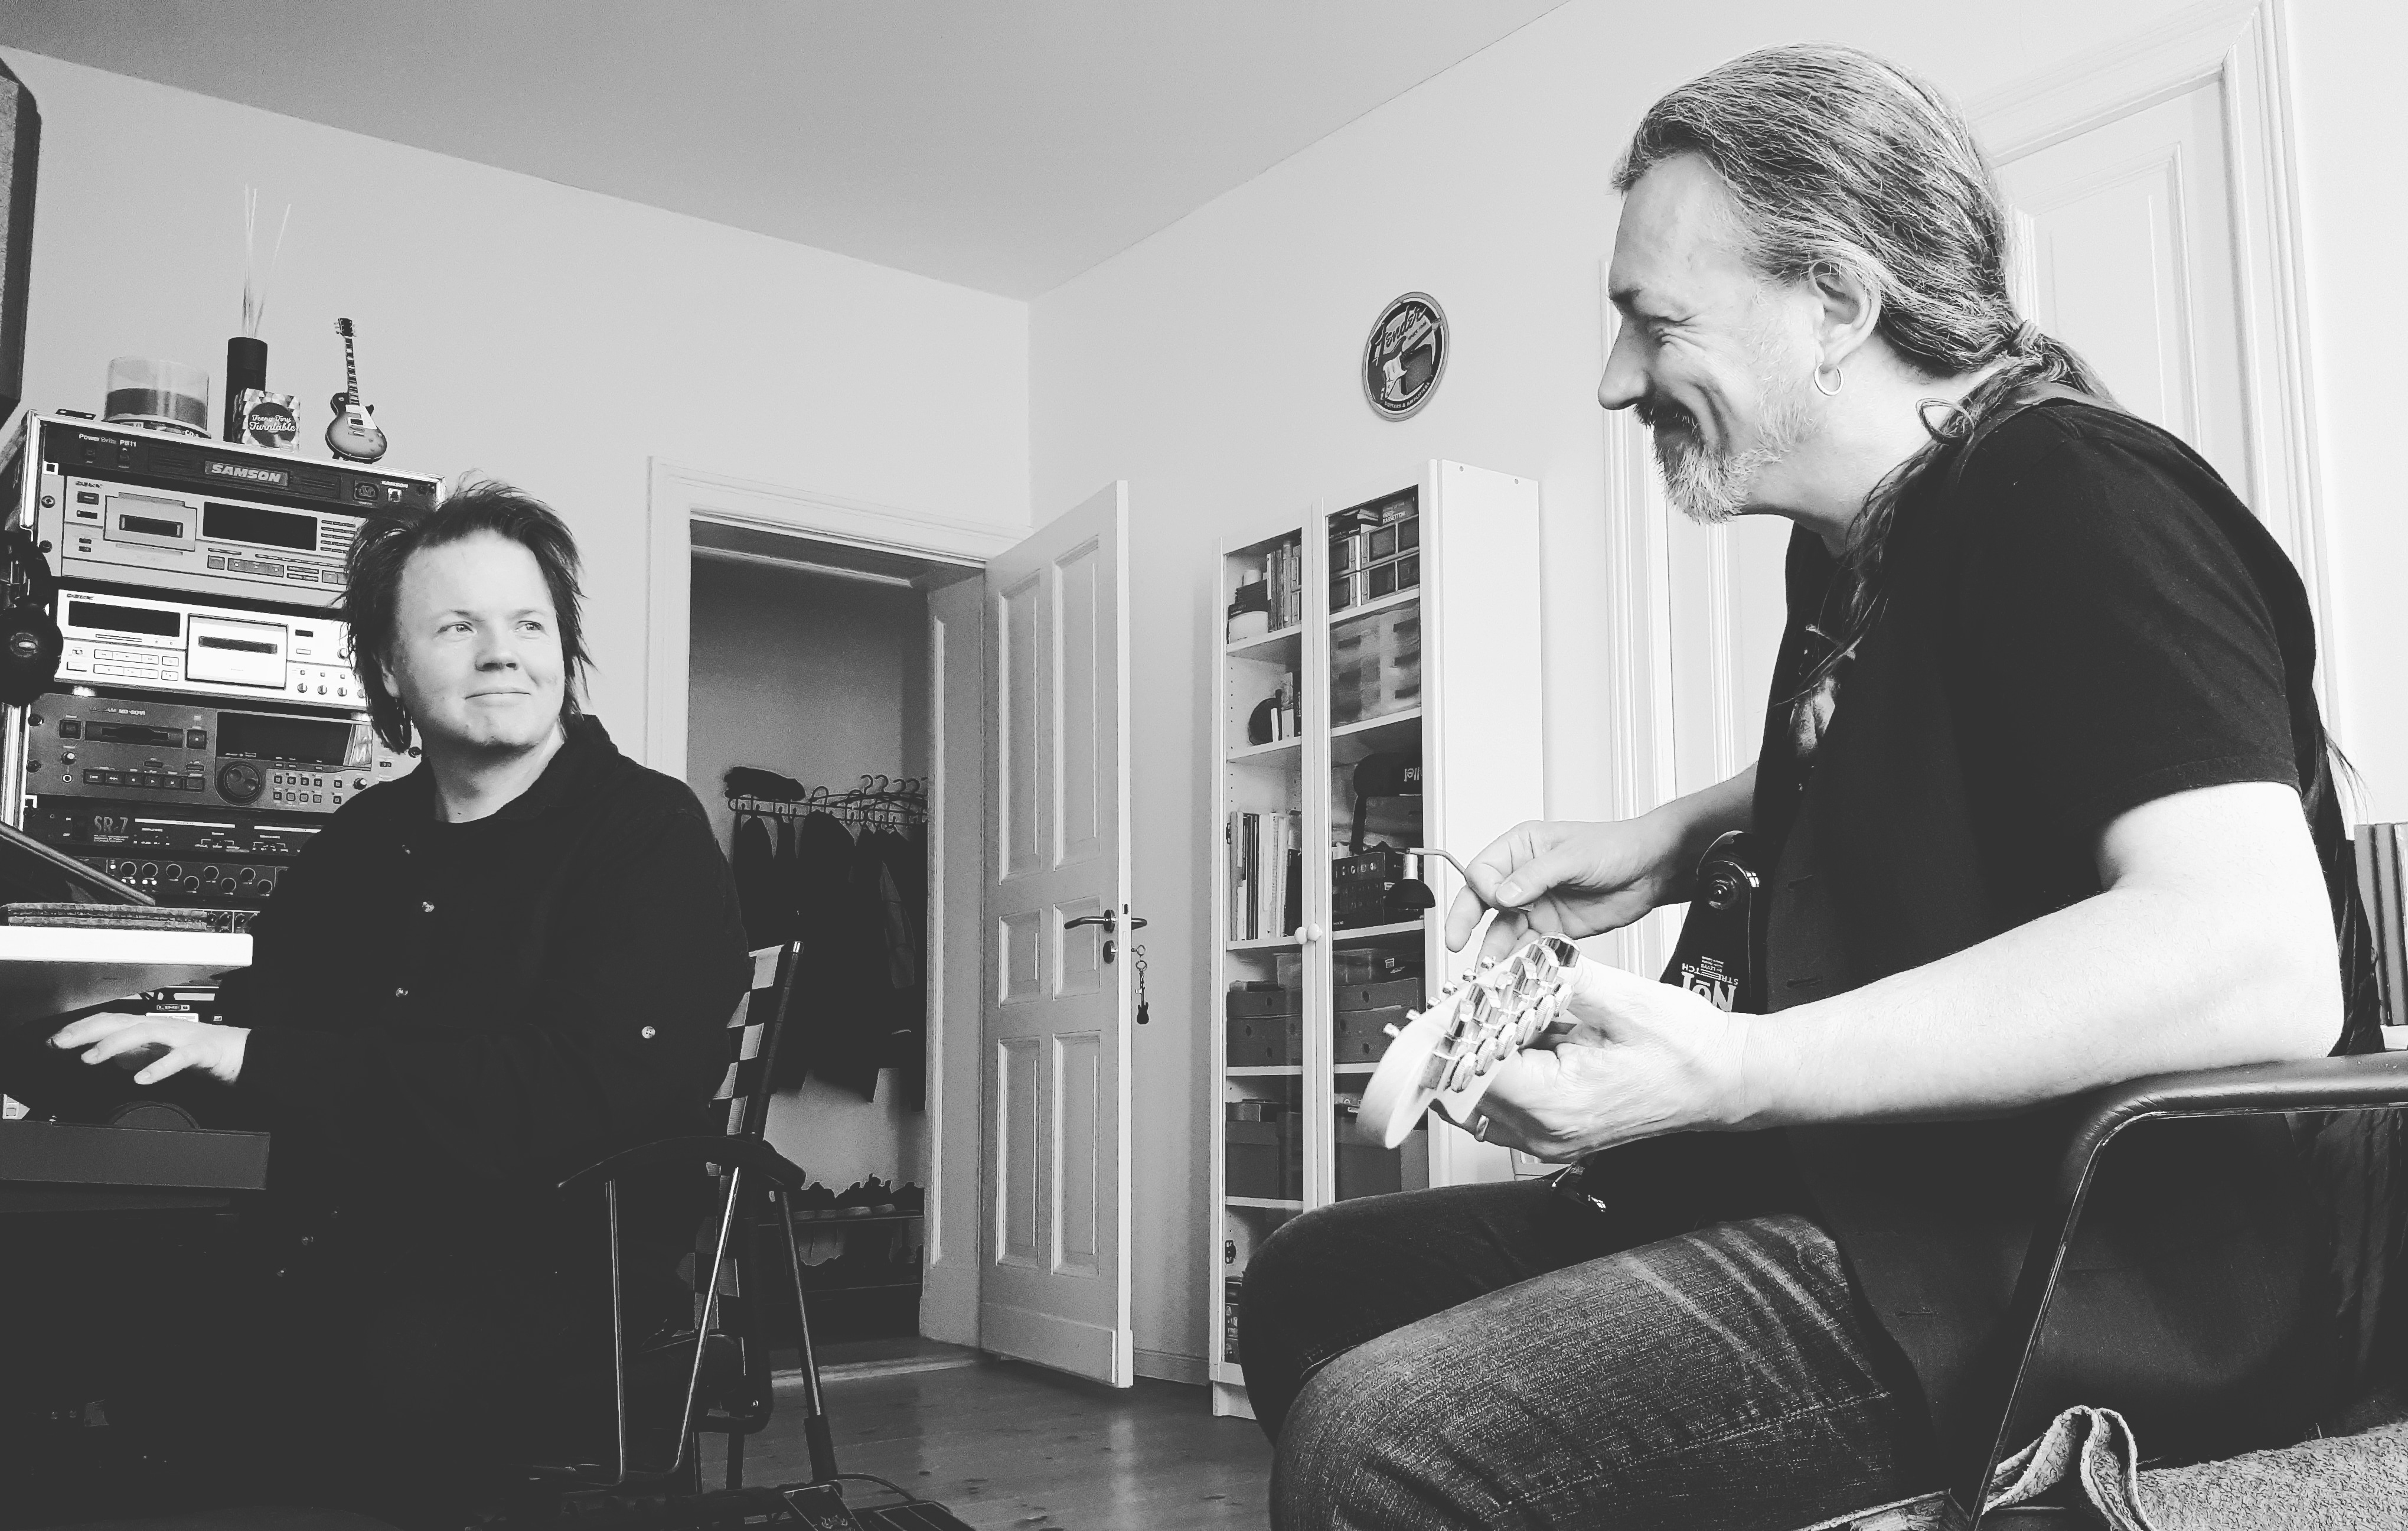 Jerome Froese and Marty Willson-Piper, Berlin 2019